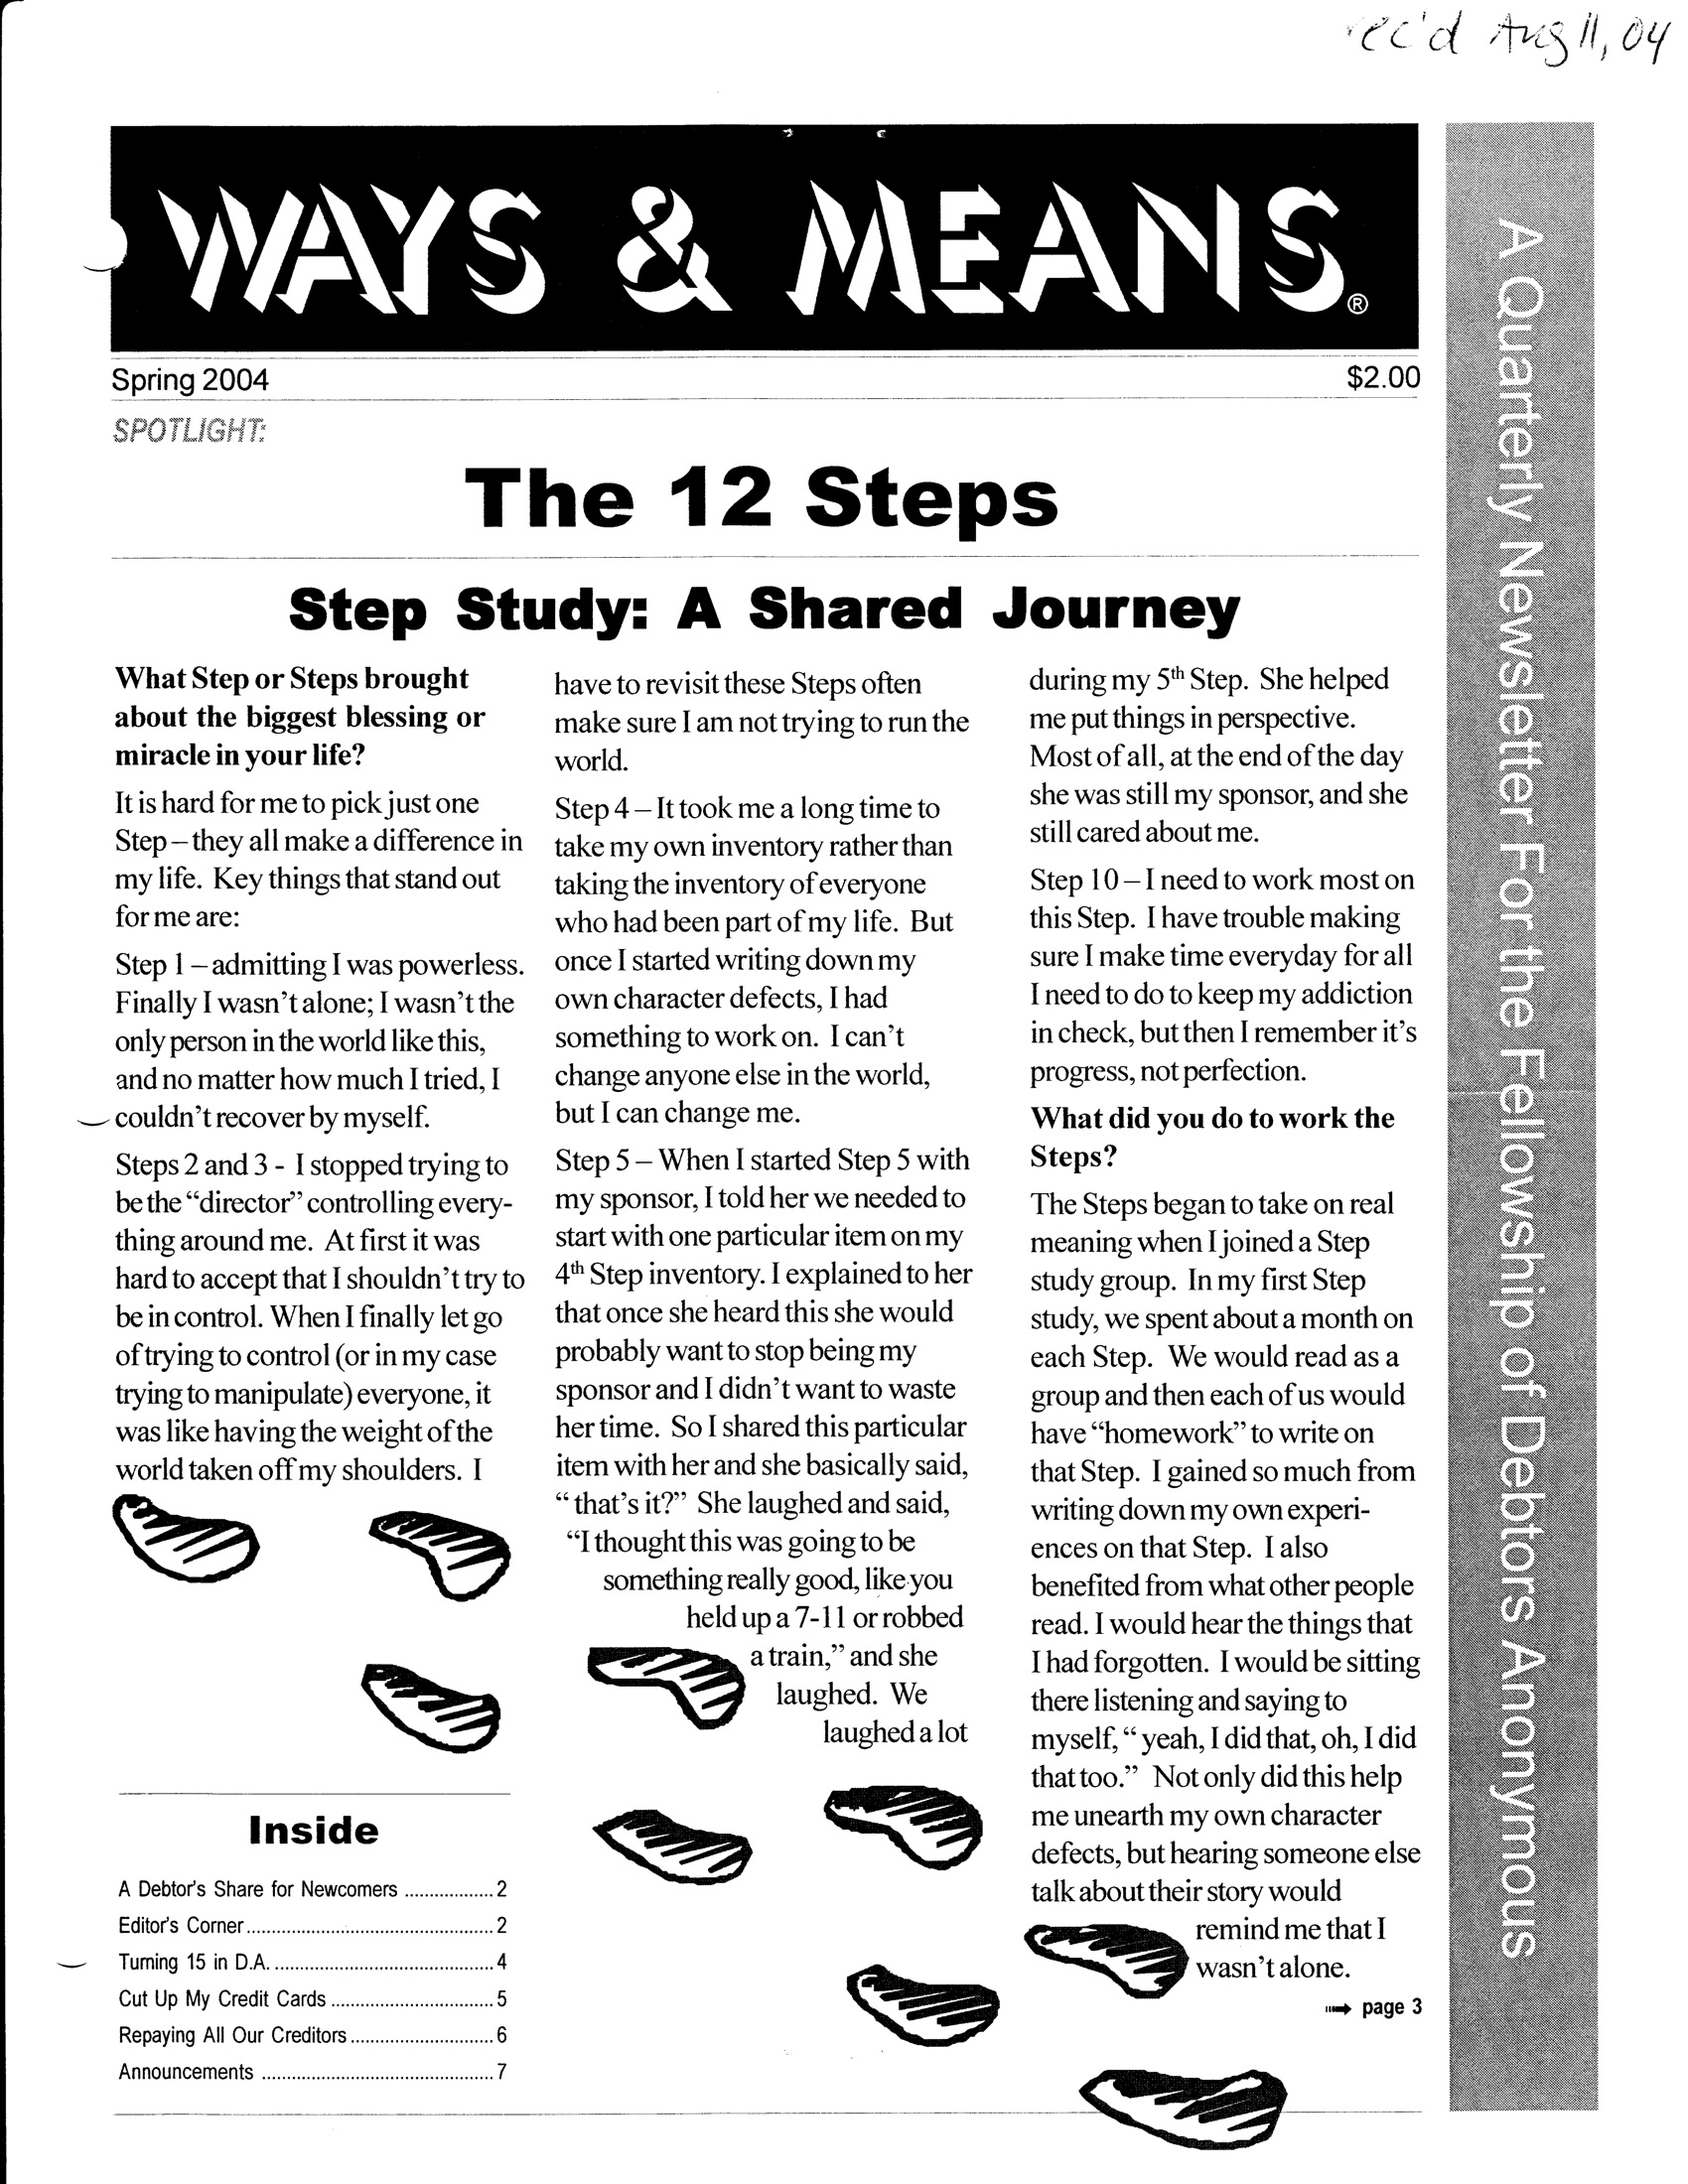 Ways & Means 2nd QTR 2004